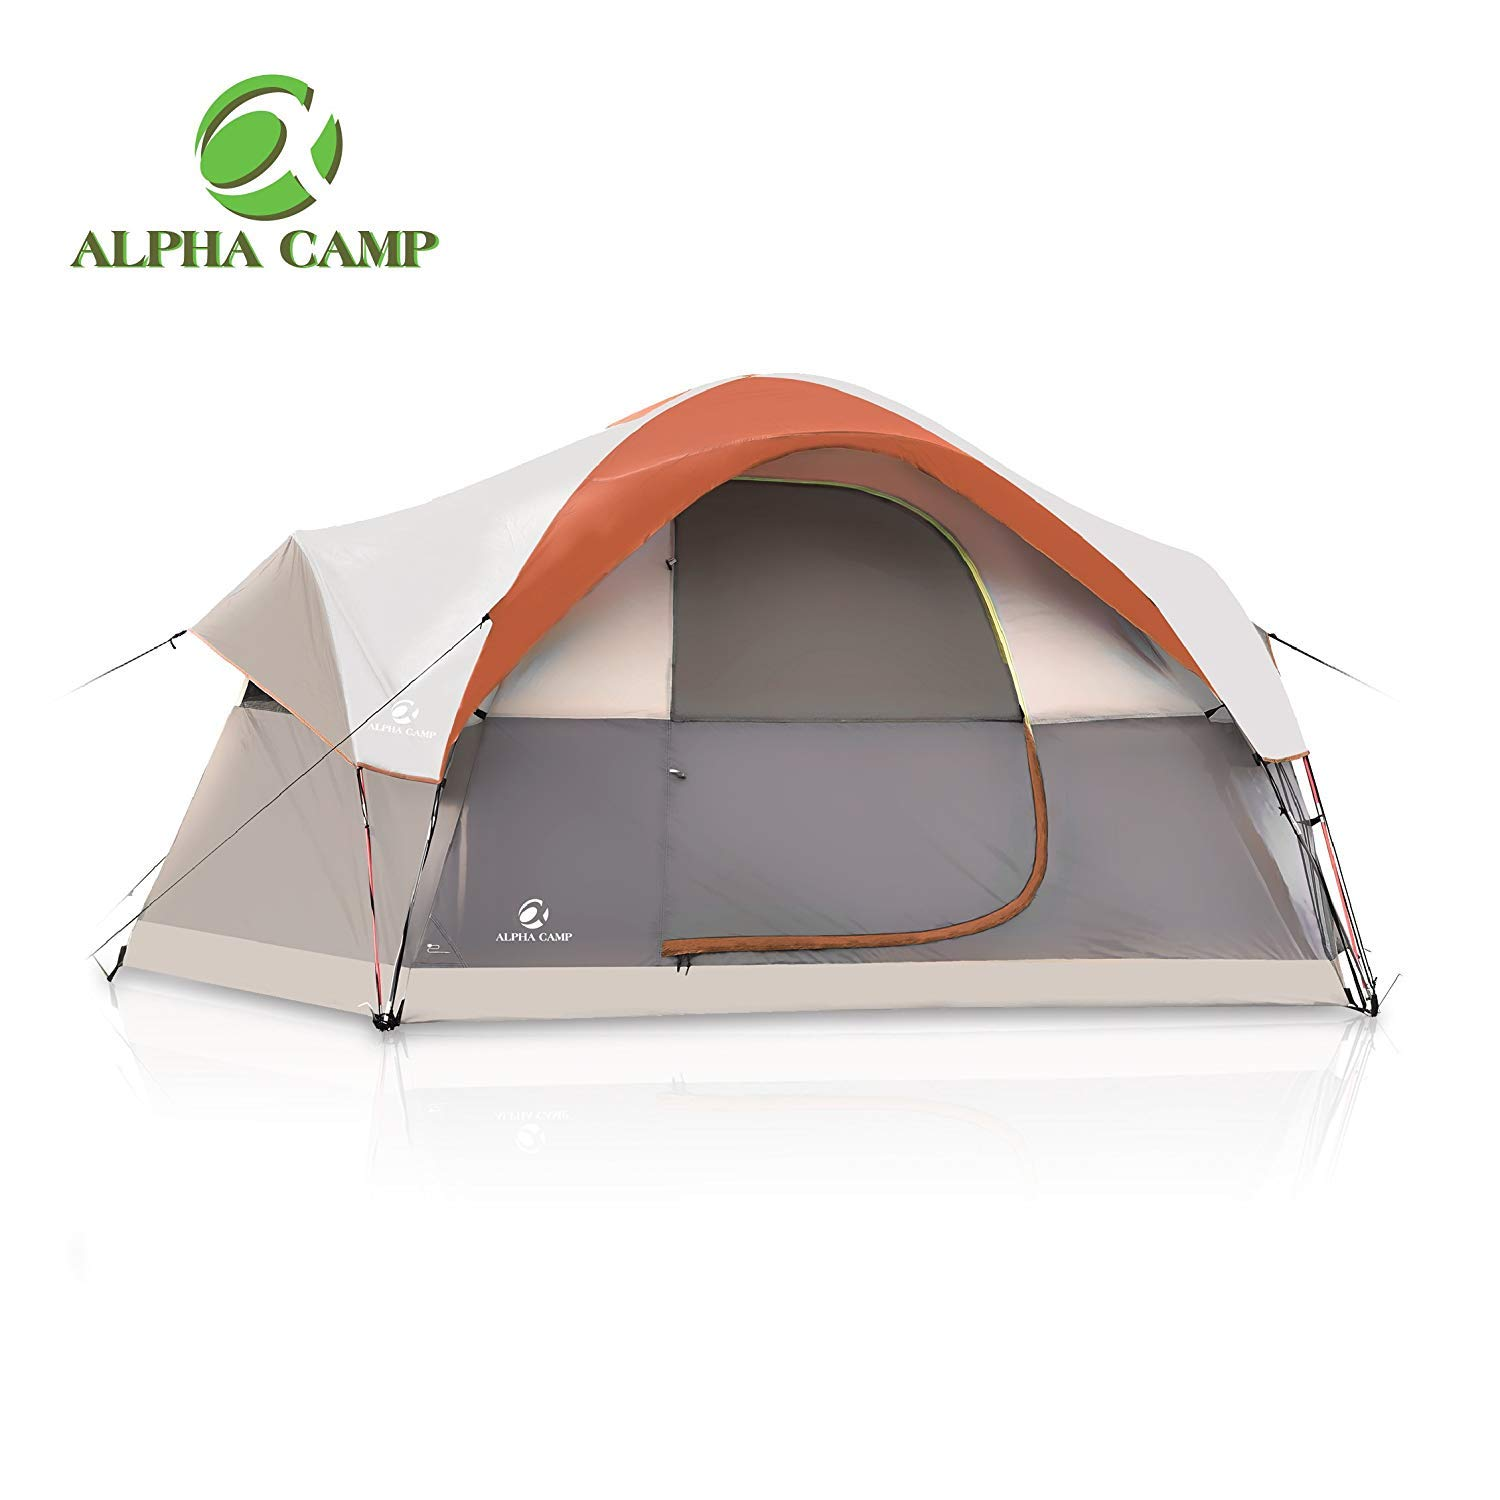 [ALPHA CAMP] [ALPHA CAMP ファミリーキャンプテント6人 Dome Family Camping Tent 6 Person - Orange 14` x 10`] (並行輸入品) One Size One Color B07H7YN26J